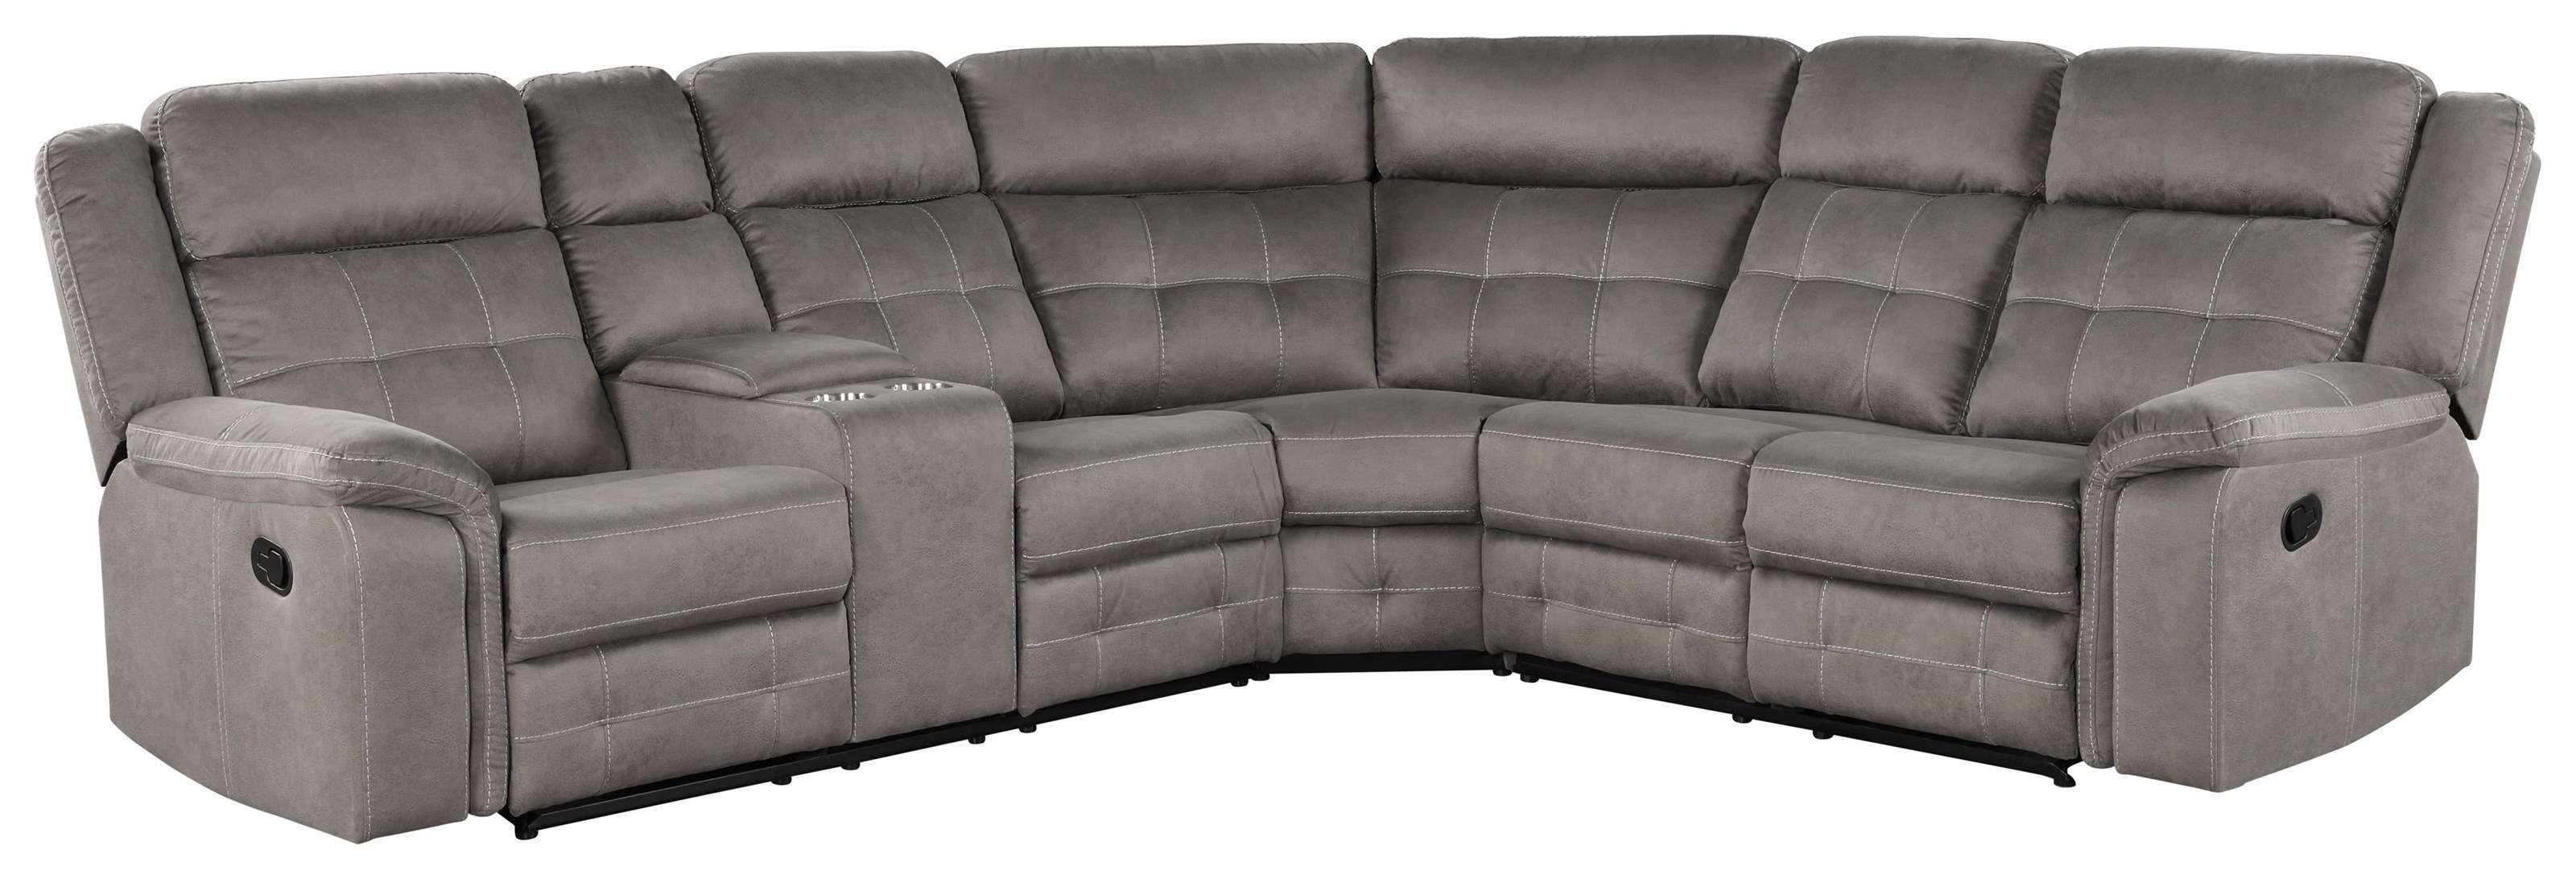 keystone 3pc reclining sectional